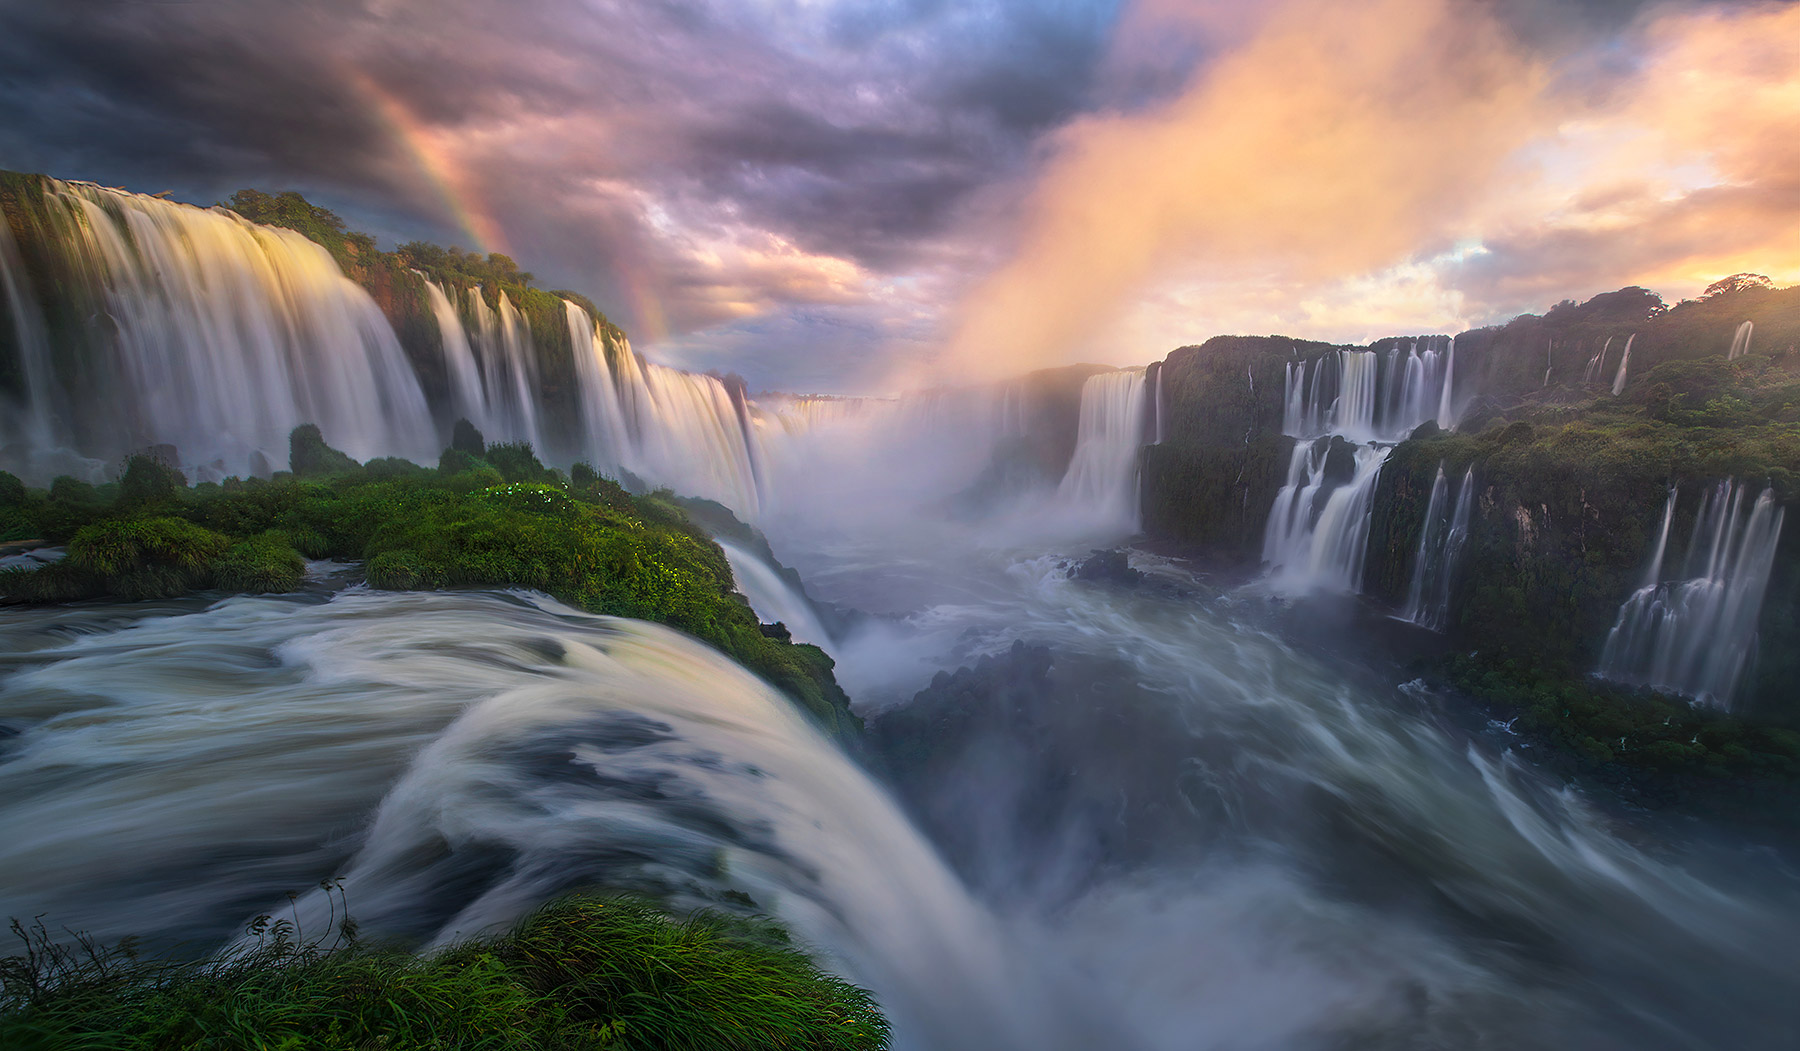 What can I say? Iguazu speaks for itself. And this evening was certainly one of the best light shows of the year!